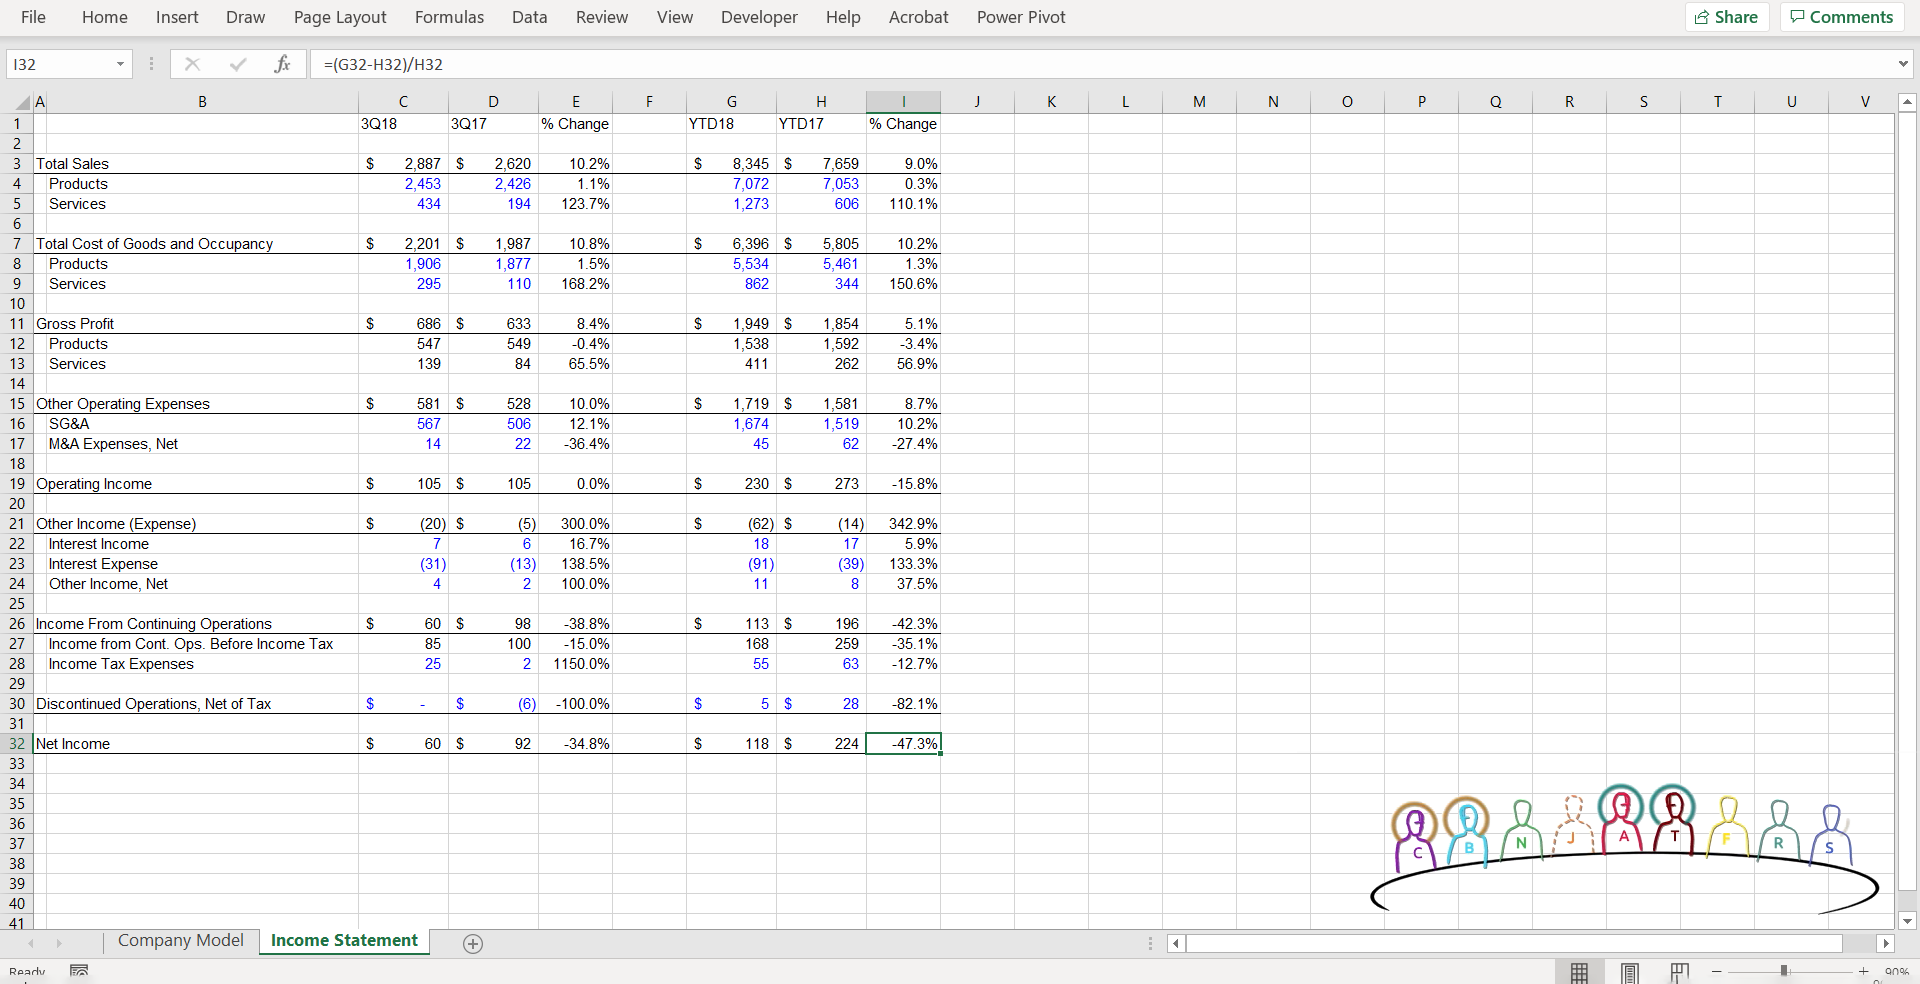 Avatars displayed in front of an Excel spreadsheet